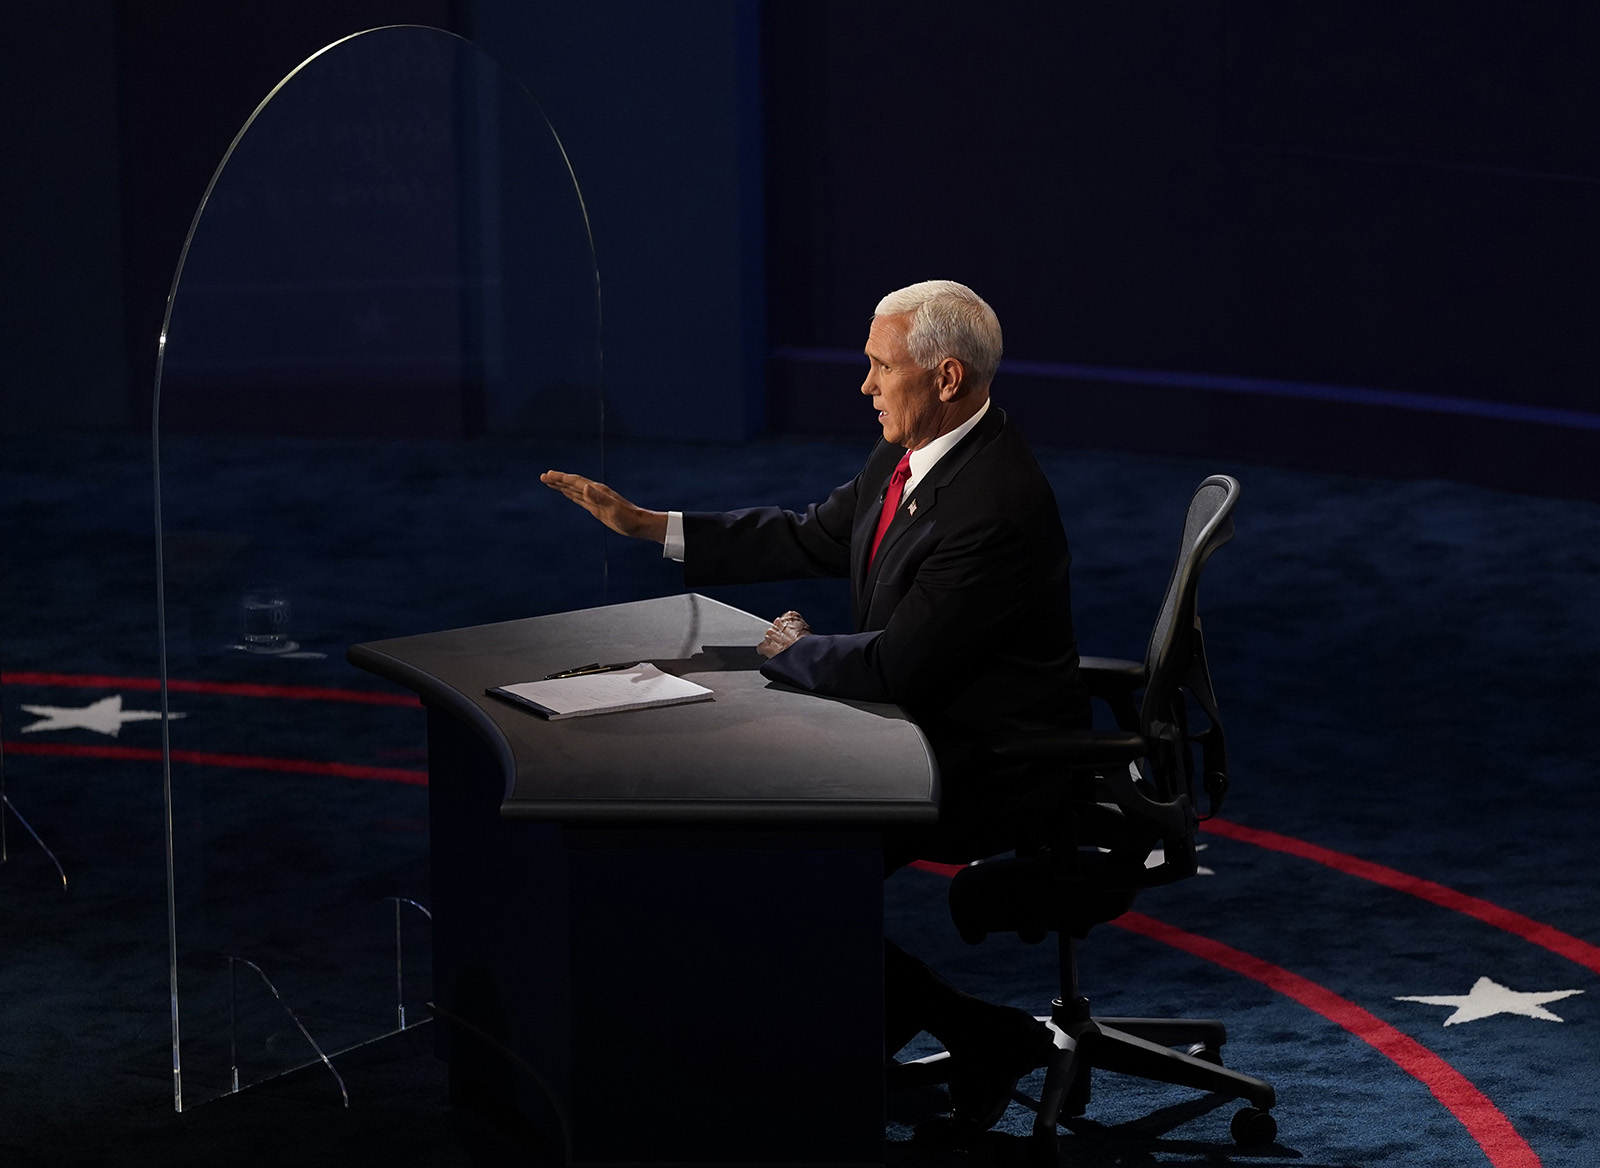 Vice President Mike Pence speaks during the vice presidential debate with Democratic vice presidential candidate Sen. Kamala Harris on Wednesday in Salt Lake City.